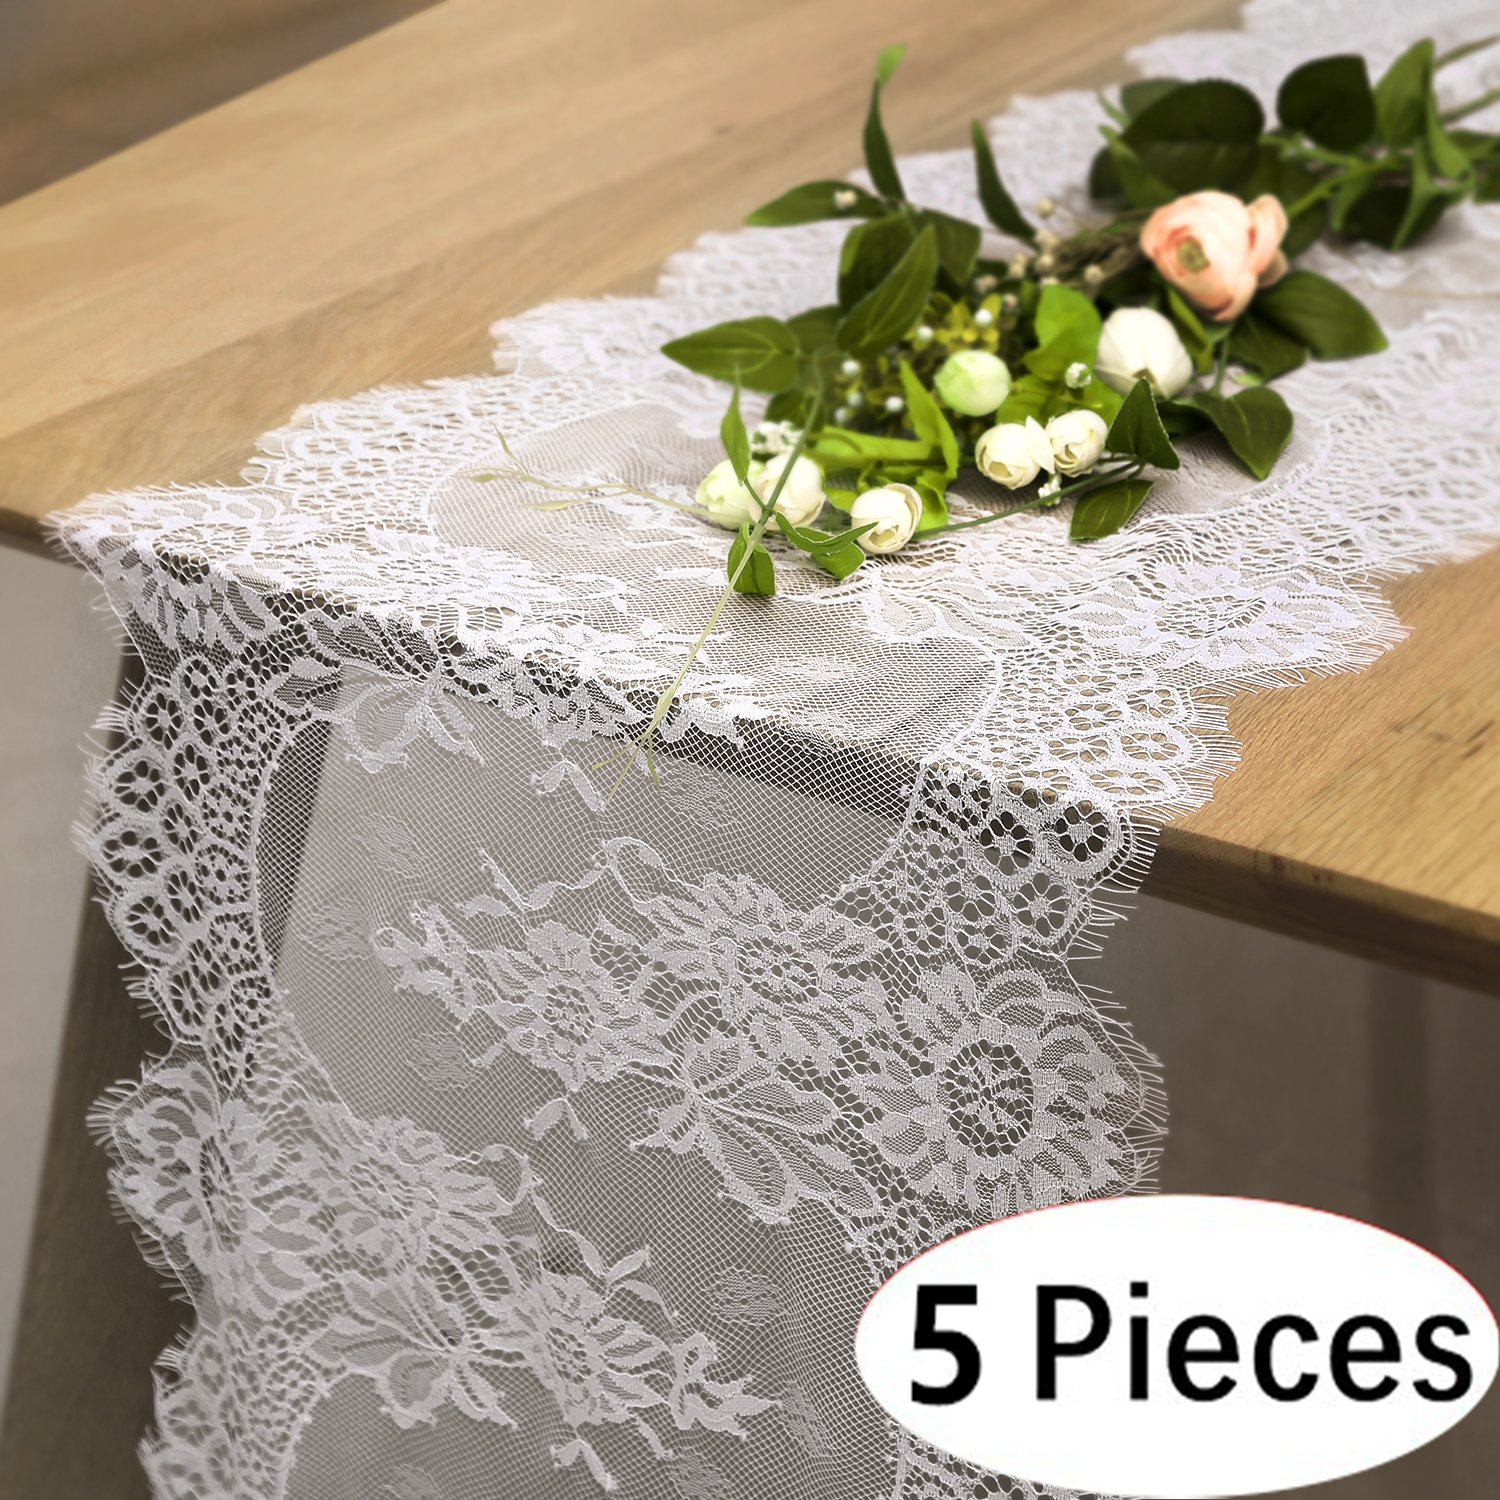 B-COOL Wedding Lace Table Runners 12'' X 120'' Washable Vintage Lace Runners for Party Bridal Shower Baby Shower (5 pieces)